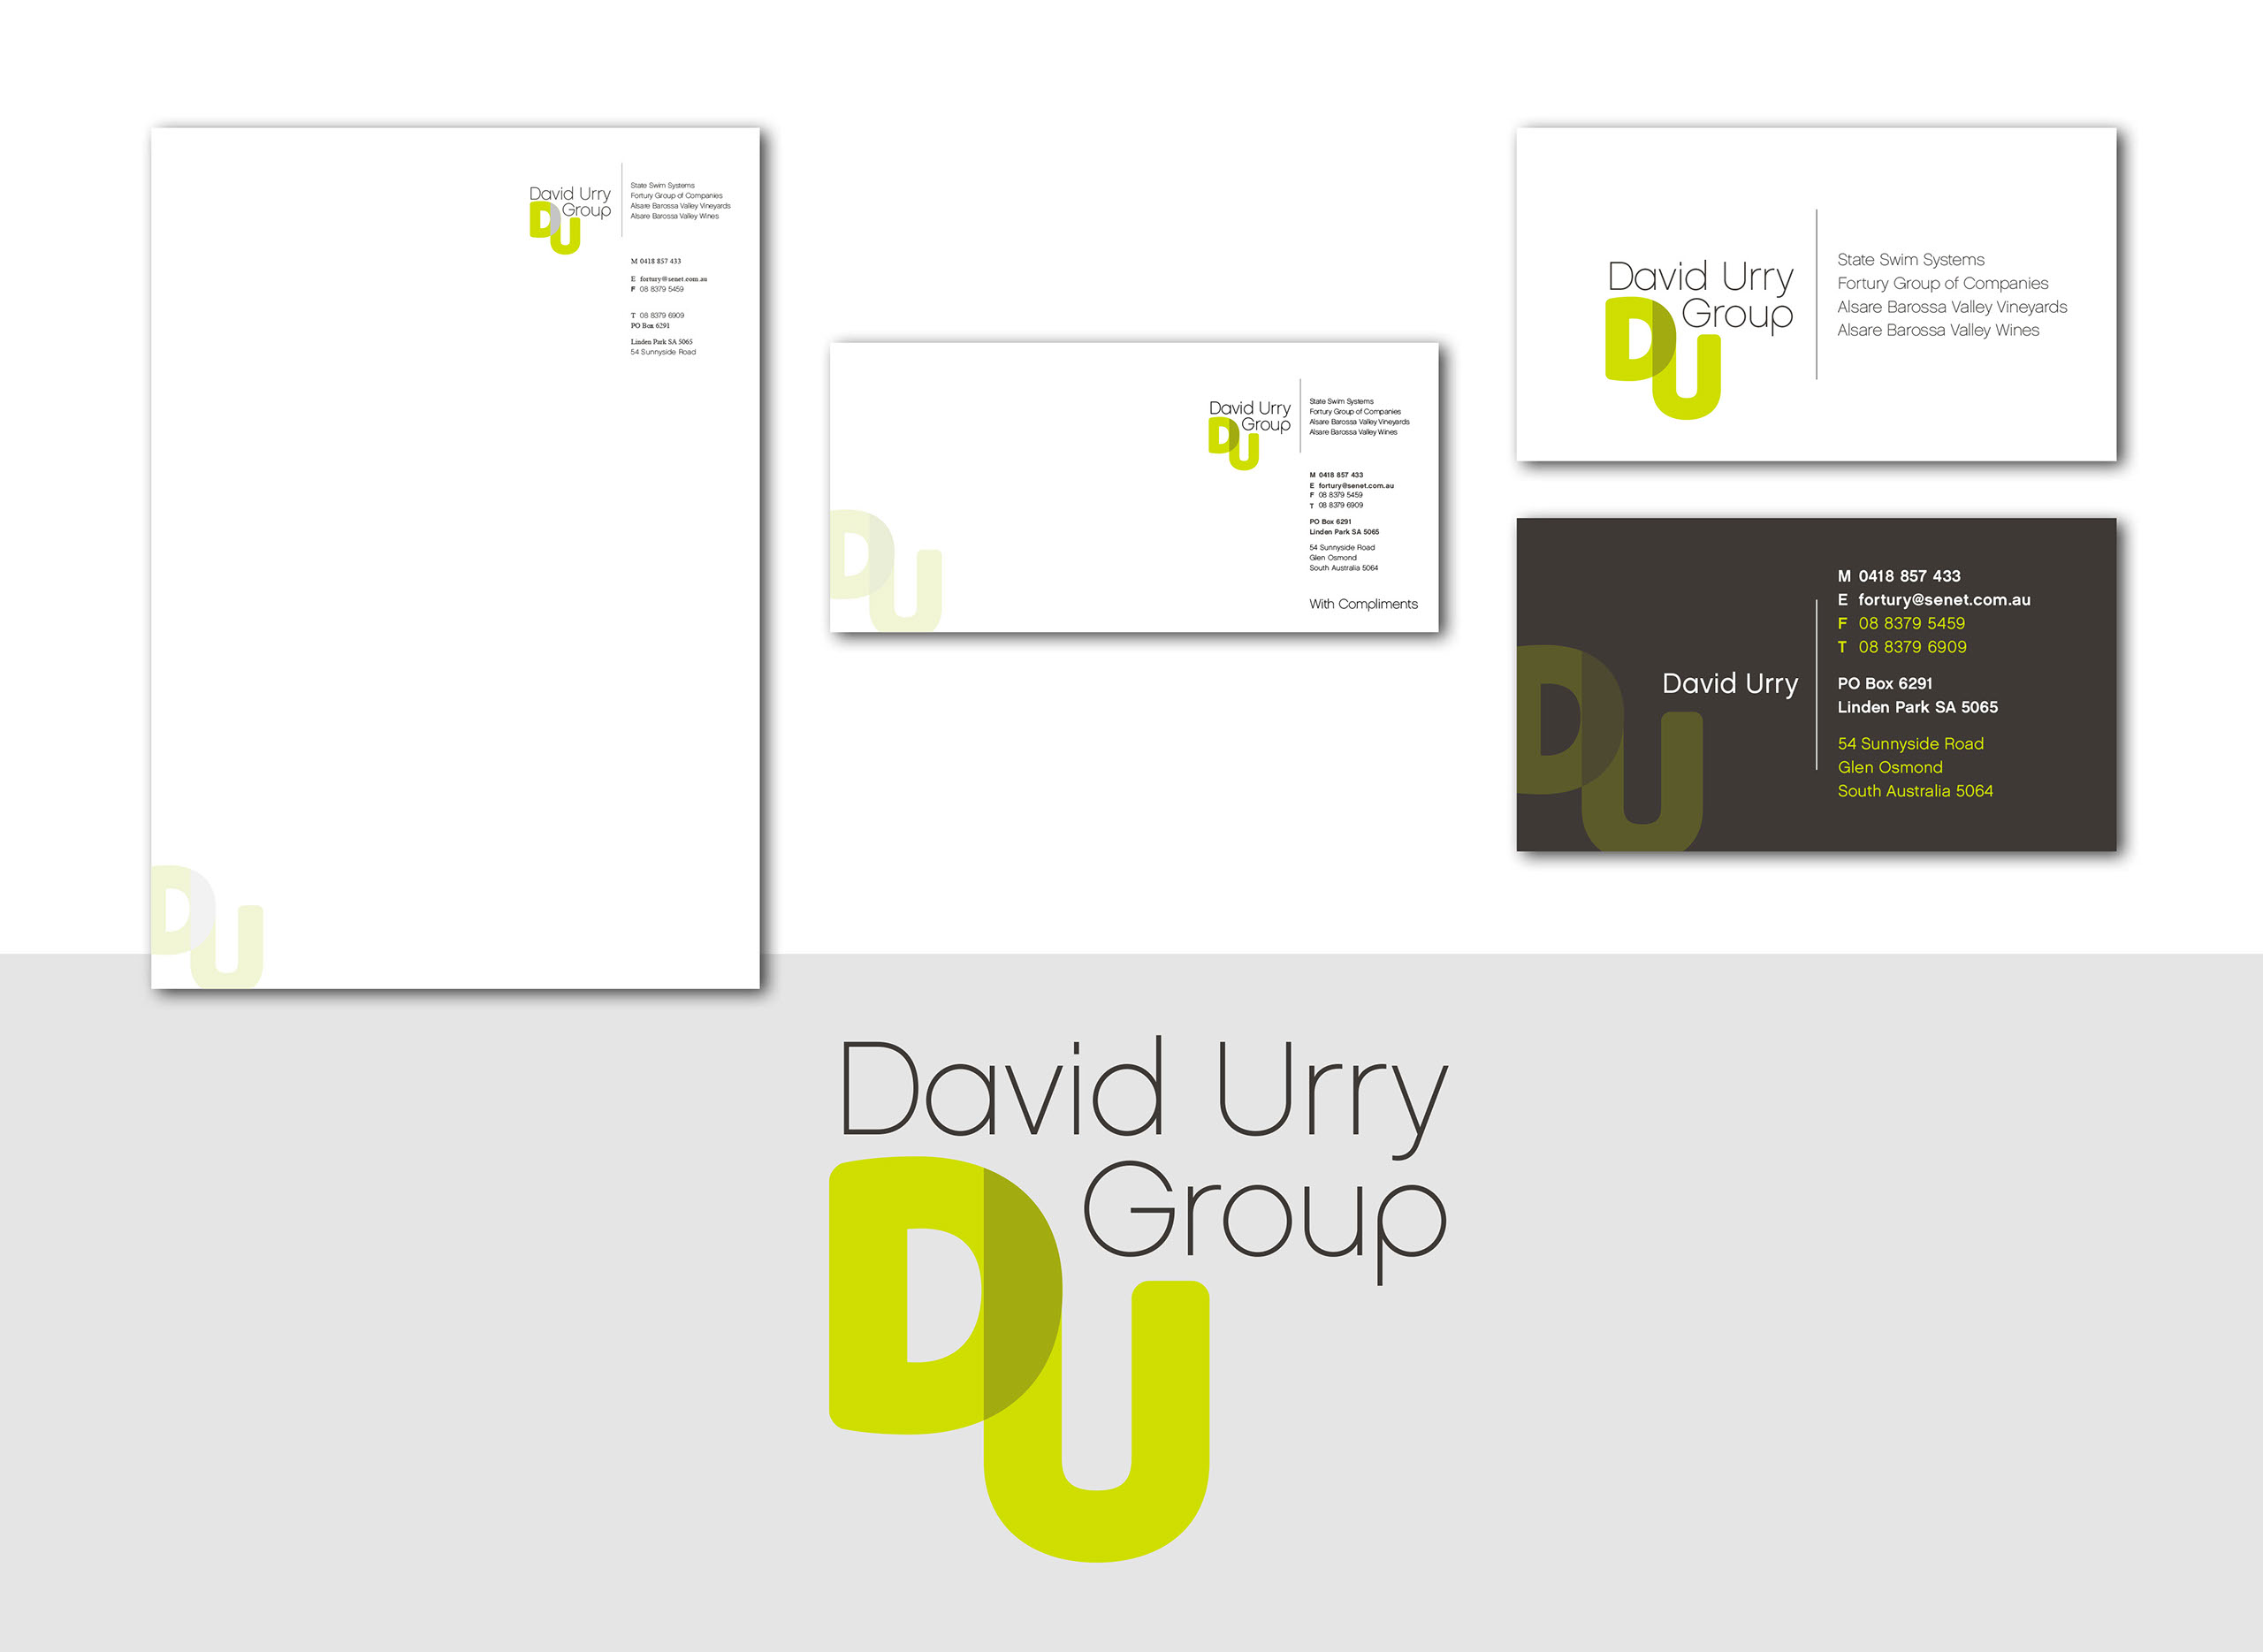 Peacock design print logo stationery business cards invitations brochures folders letterhead with reheart Choice Image